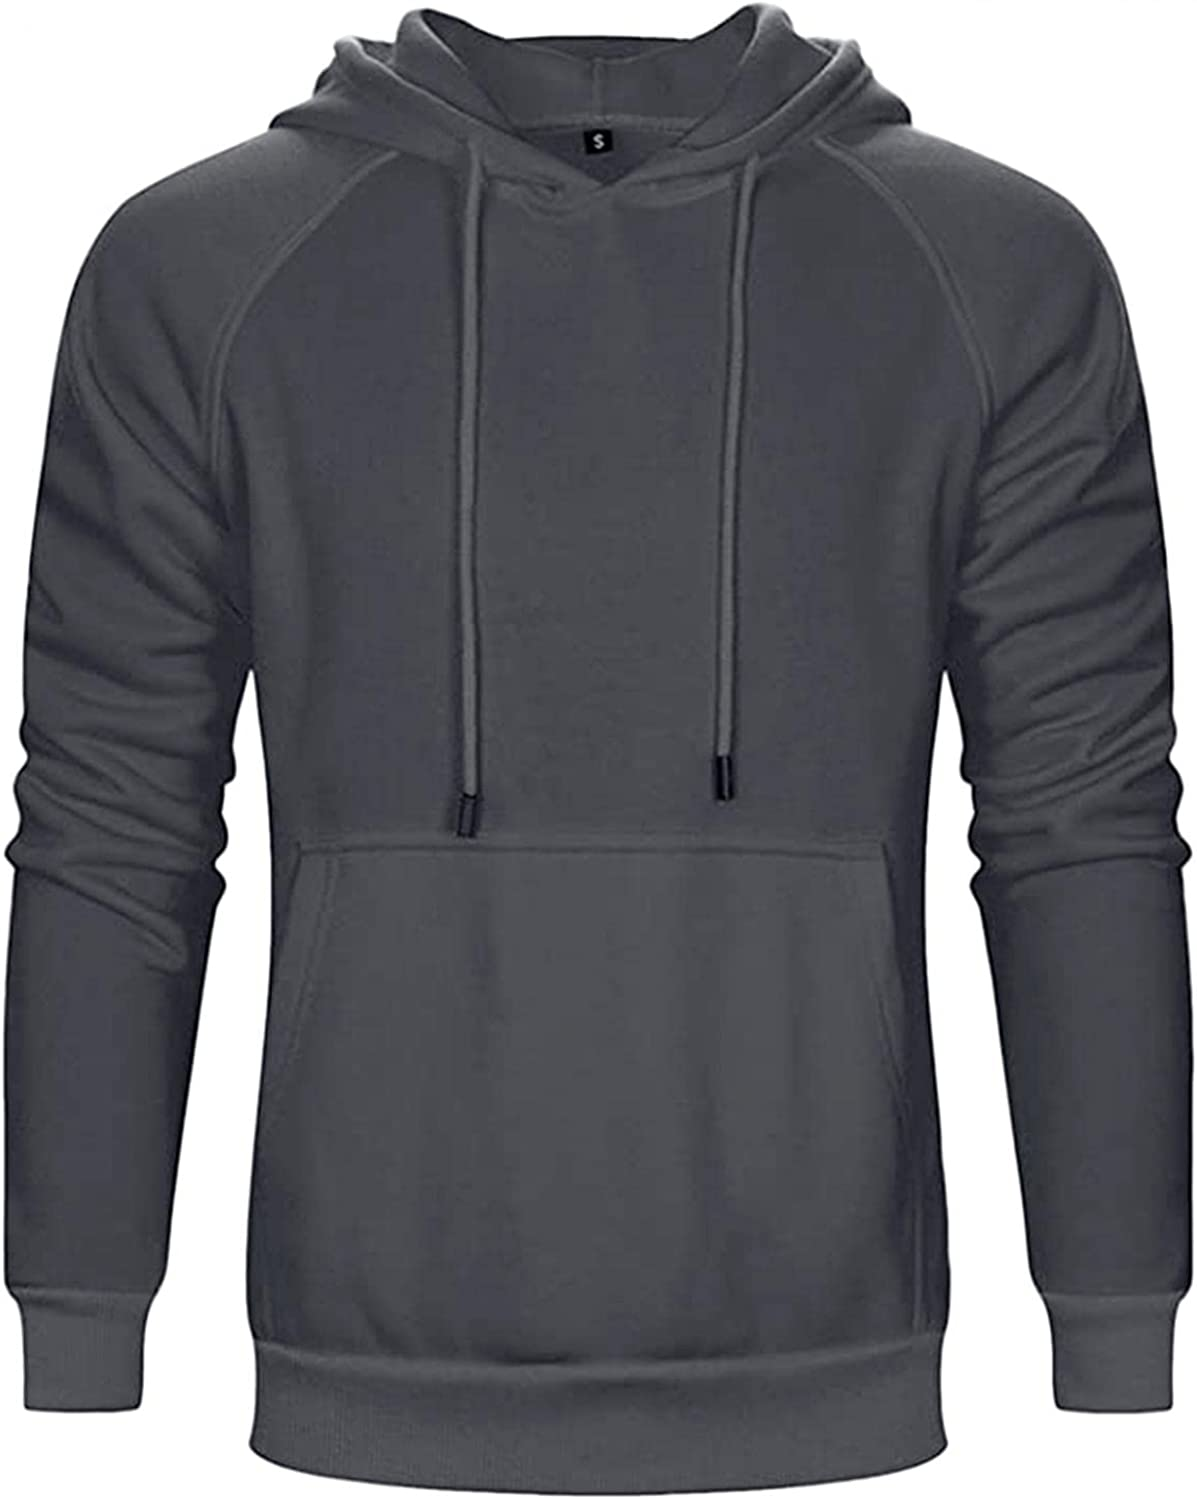 Mens Hooded Sweatershirts Solid Long Sleeve Hoodies Pullover Casual Fashion Sports Tops Blouse with Kangaroo Pockets